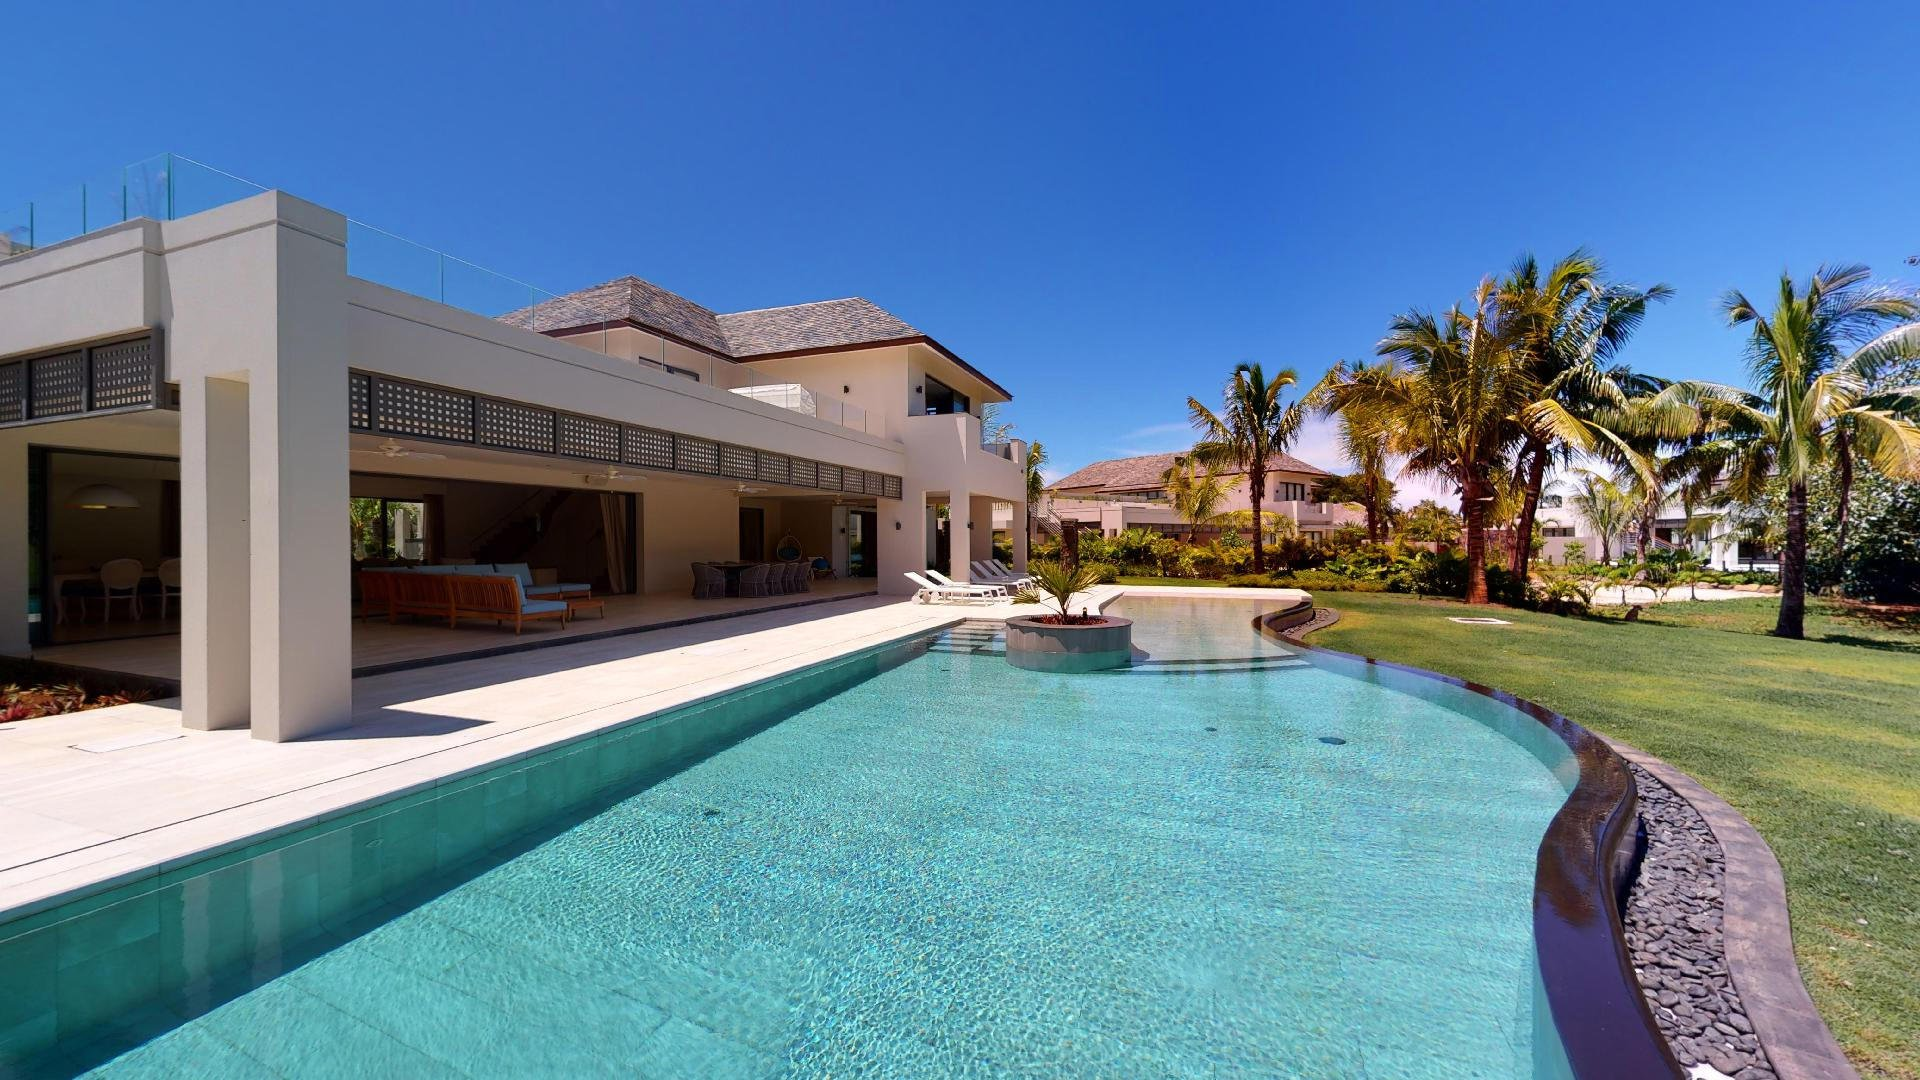 Villa in Bel Air, Flacq District, Mauritius 1